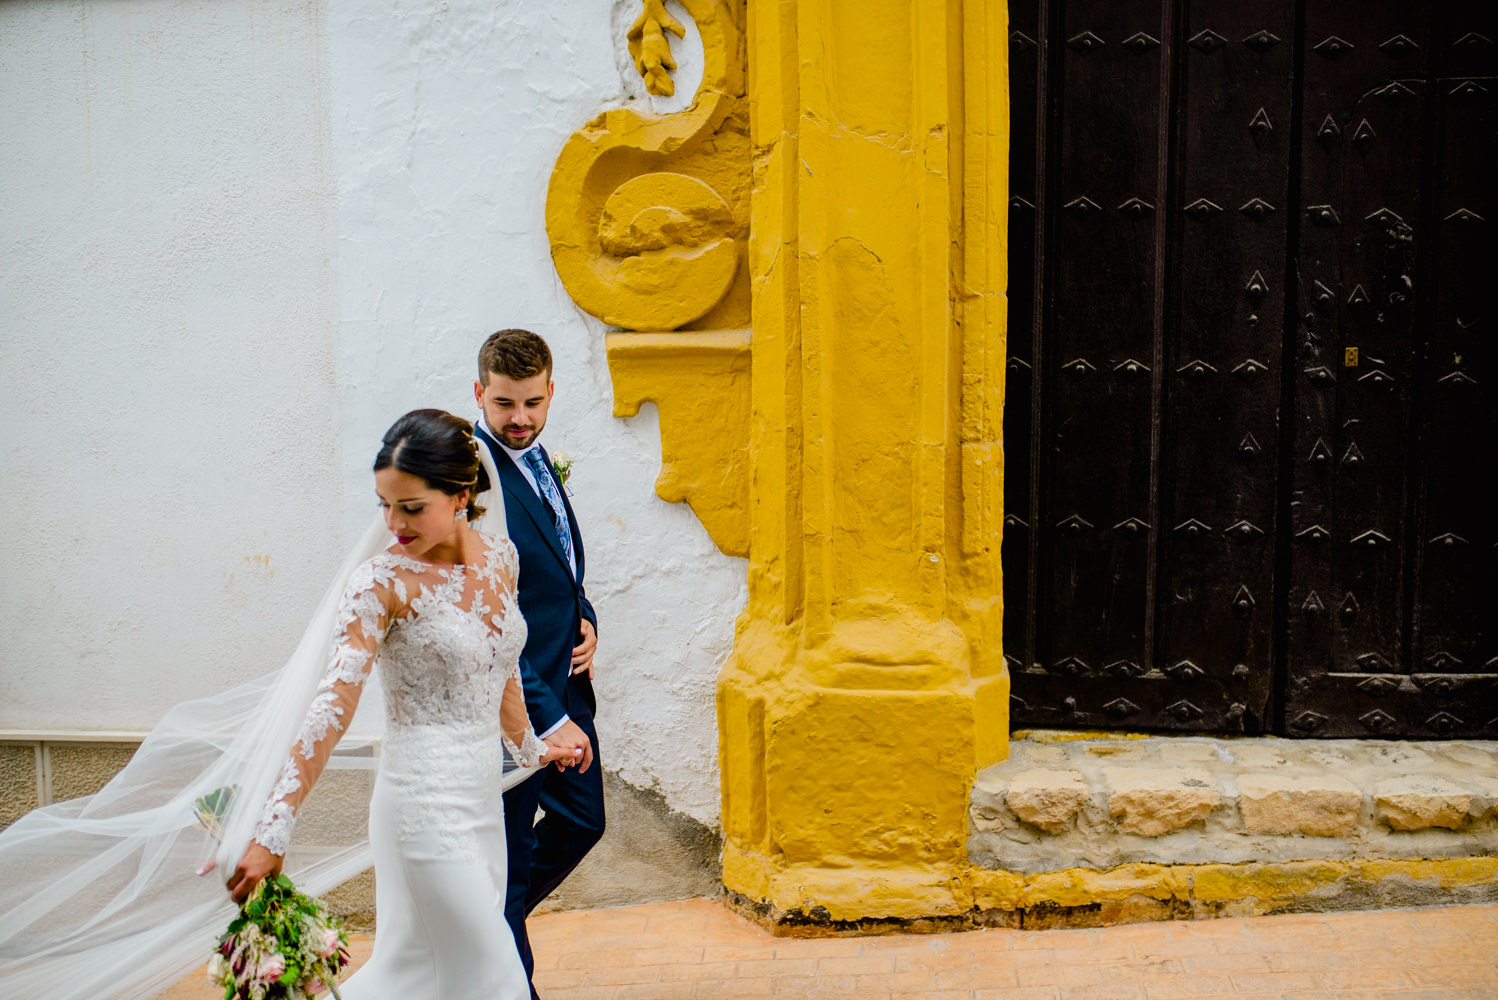 granada-wedding-photographer080.jpg